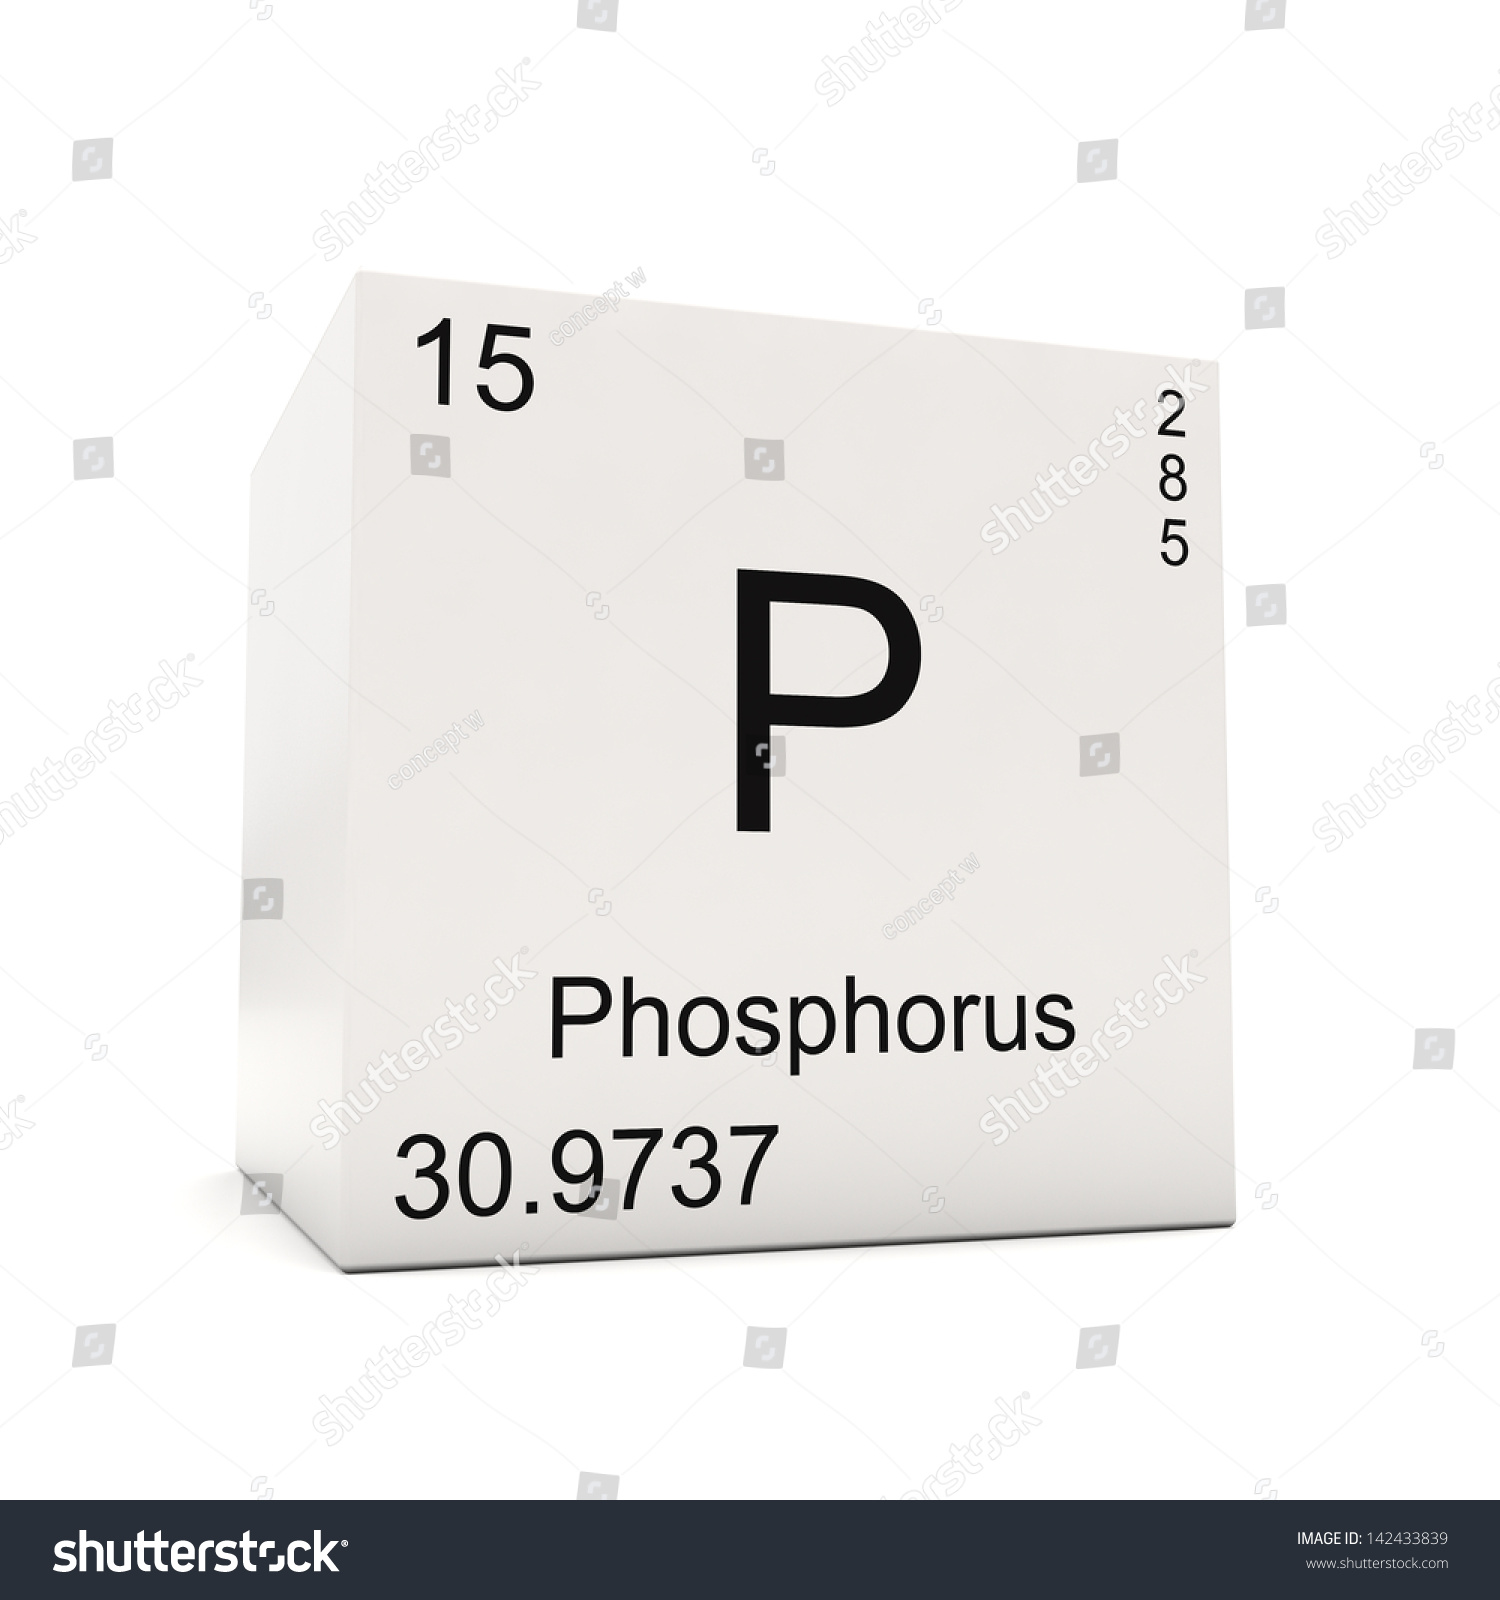 Phosphorus on periodic table image collections periodic table images cube phosphorus element periodic table isolated stock illustration cube of phosphorus element of the periodic table gamestrikefo Gallery